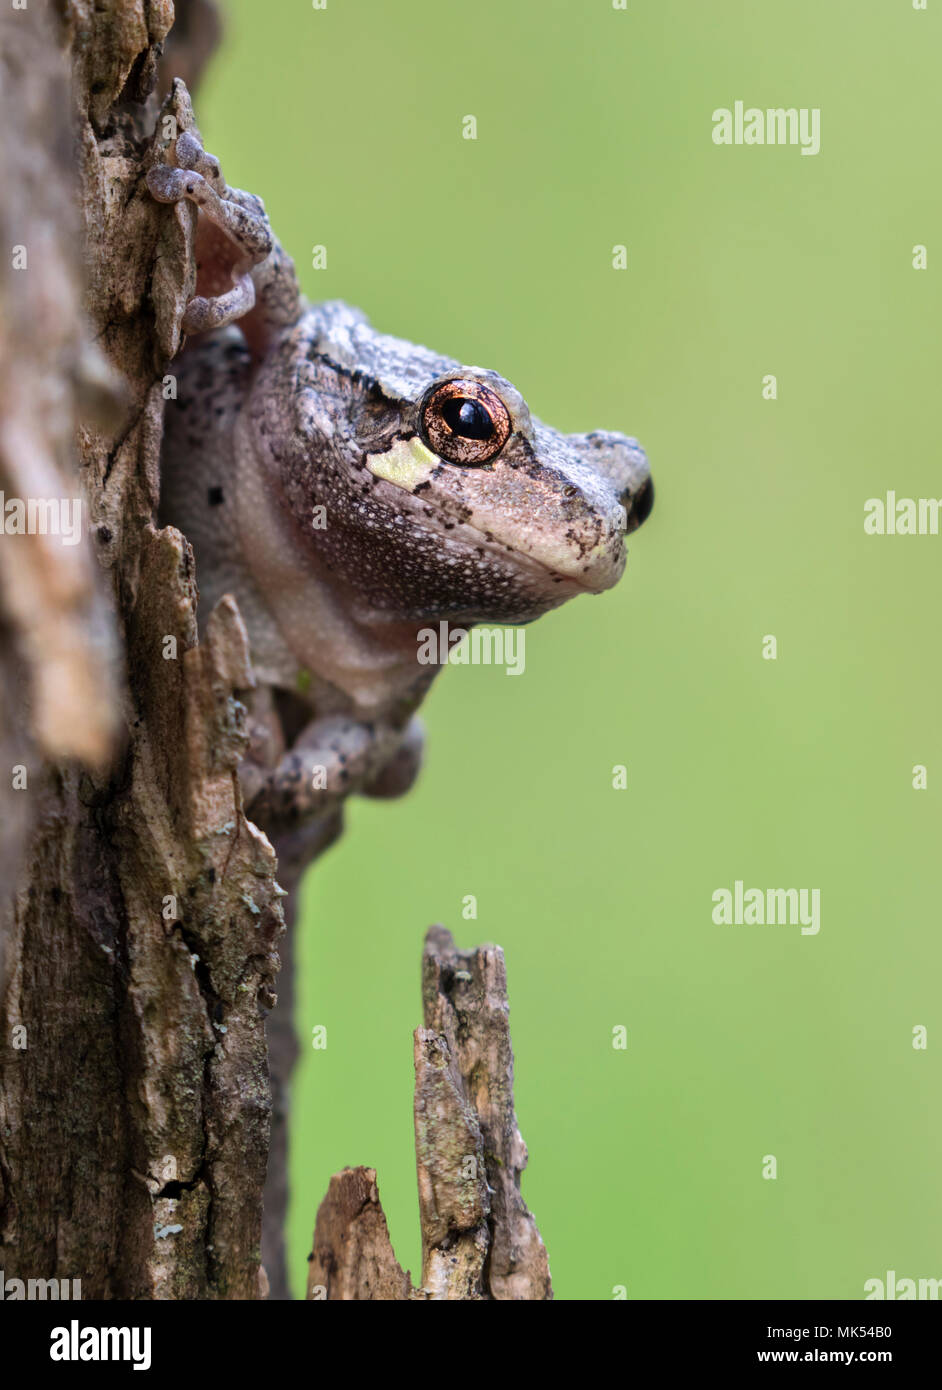 Gray treefrog (Hyla versicolor) looking out from a tree, Iowa, USA. Stock Photo